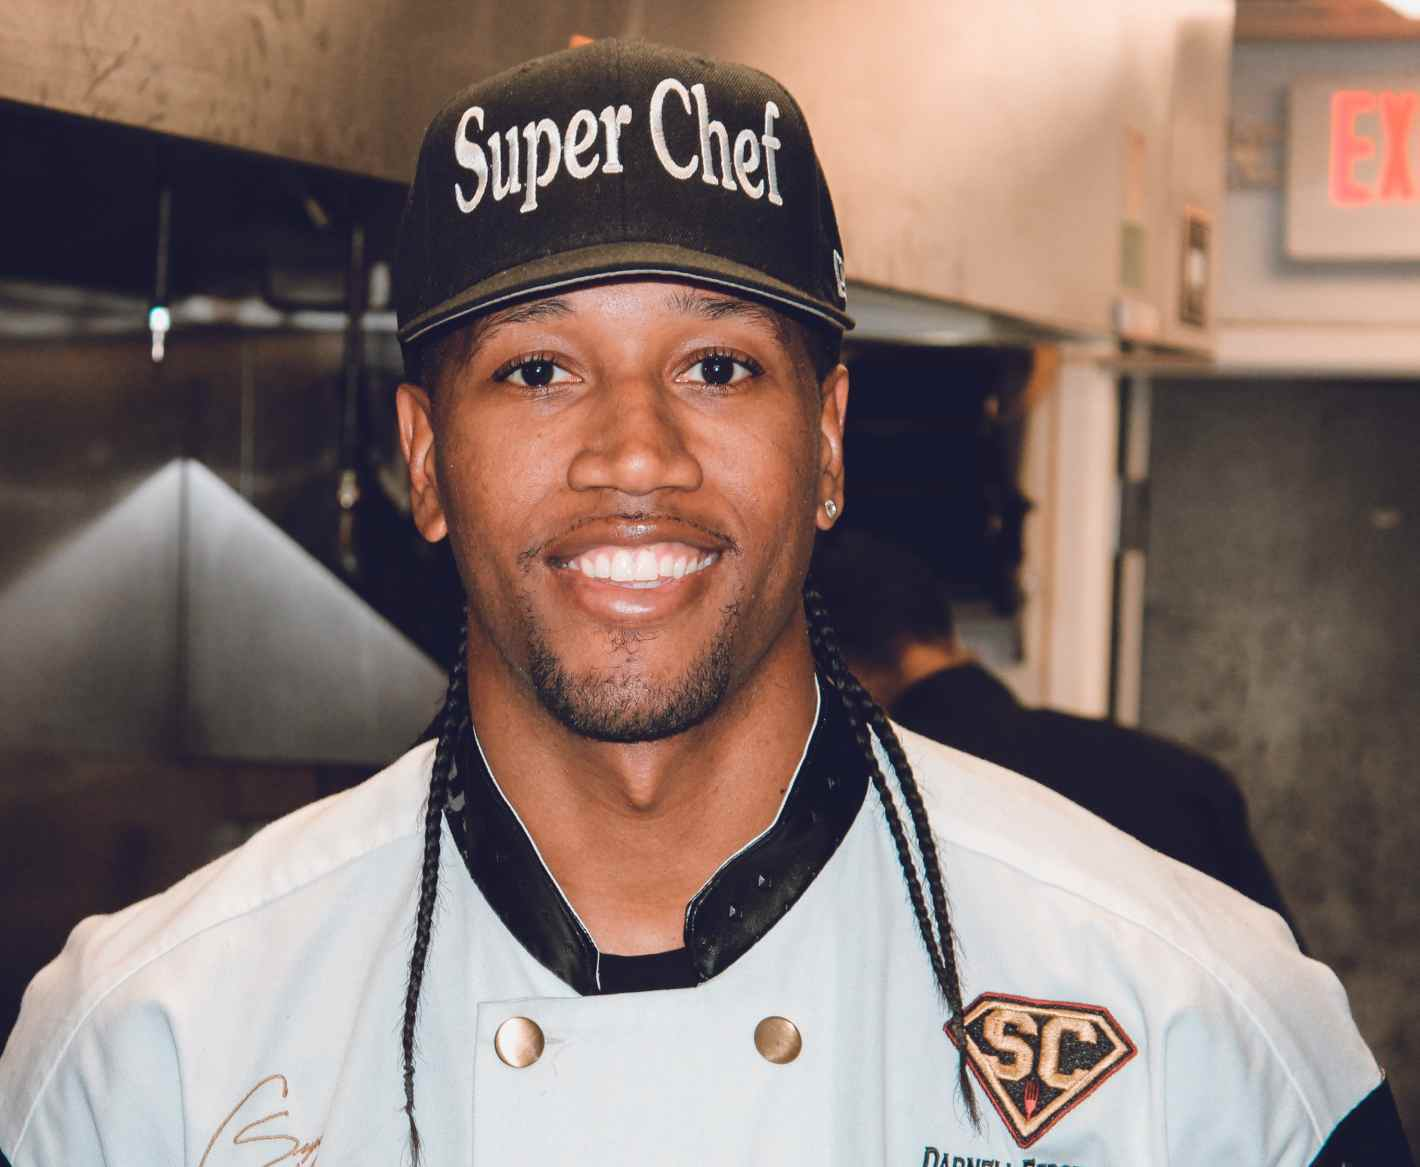 Image of renowned chef, Darnell Ferguson